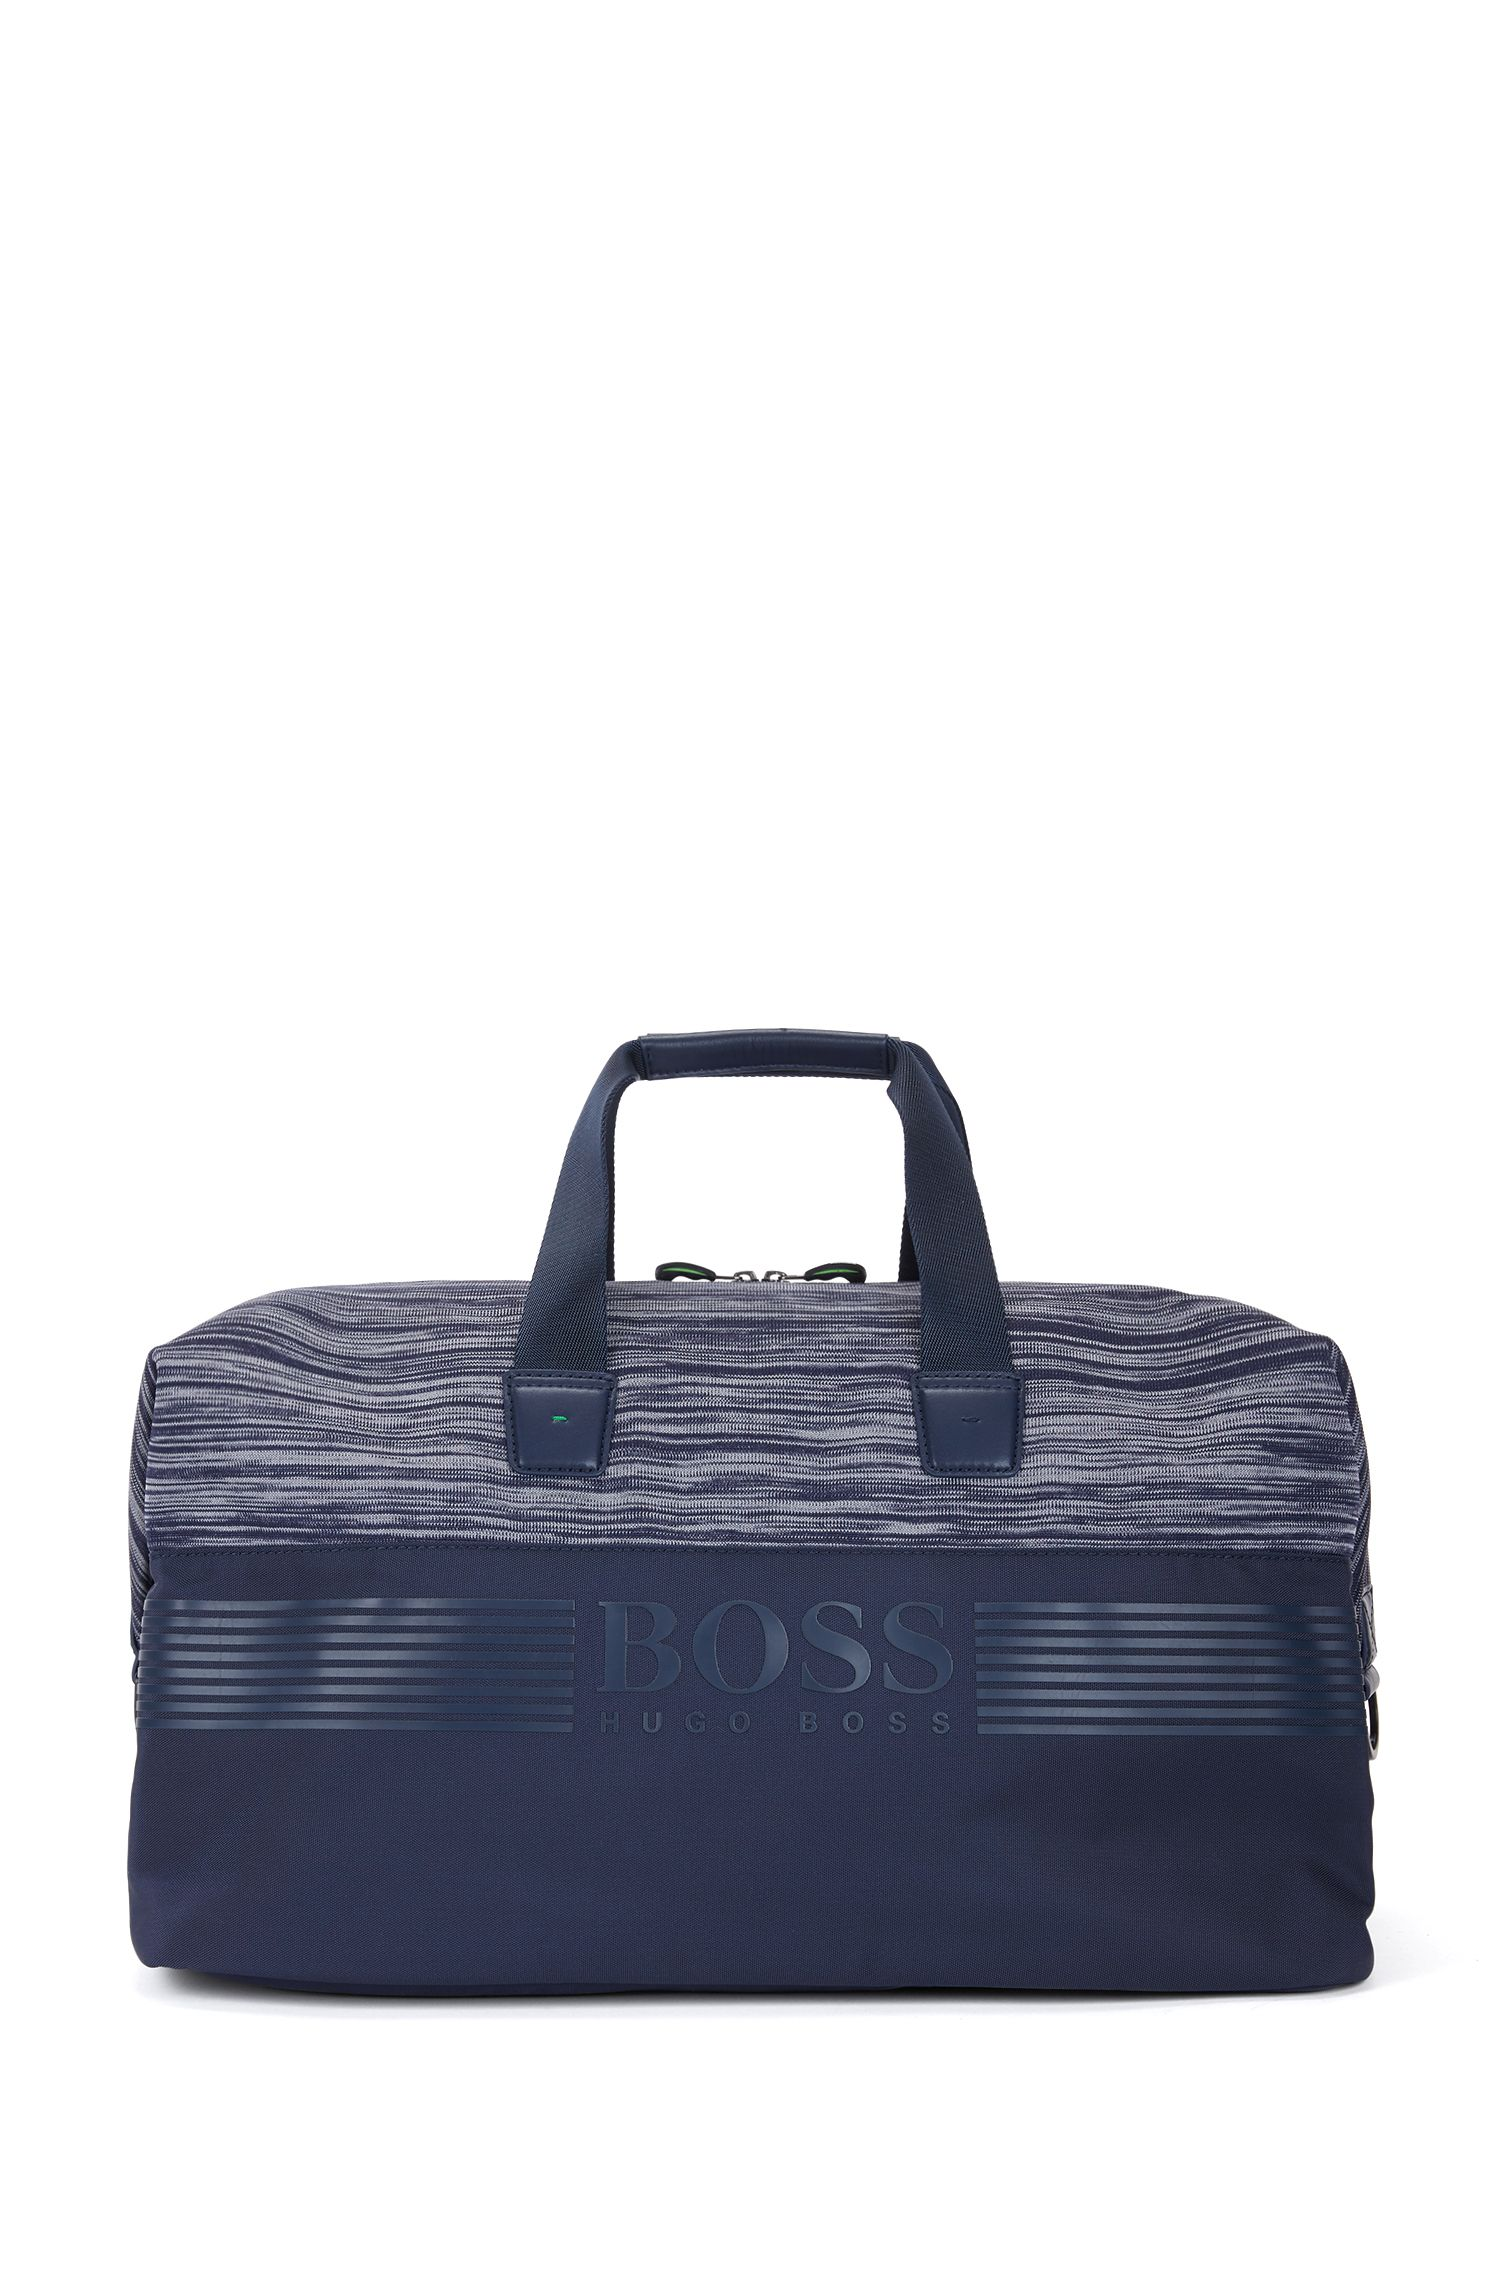 Nylon Carryall Bag | Pixel K Holdall, Dark Blue